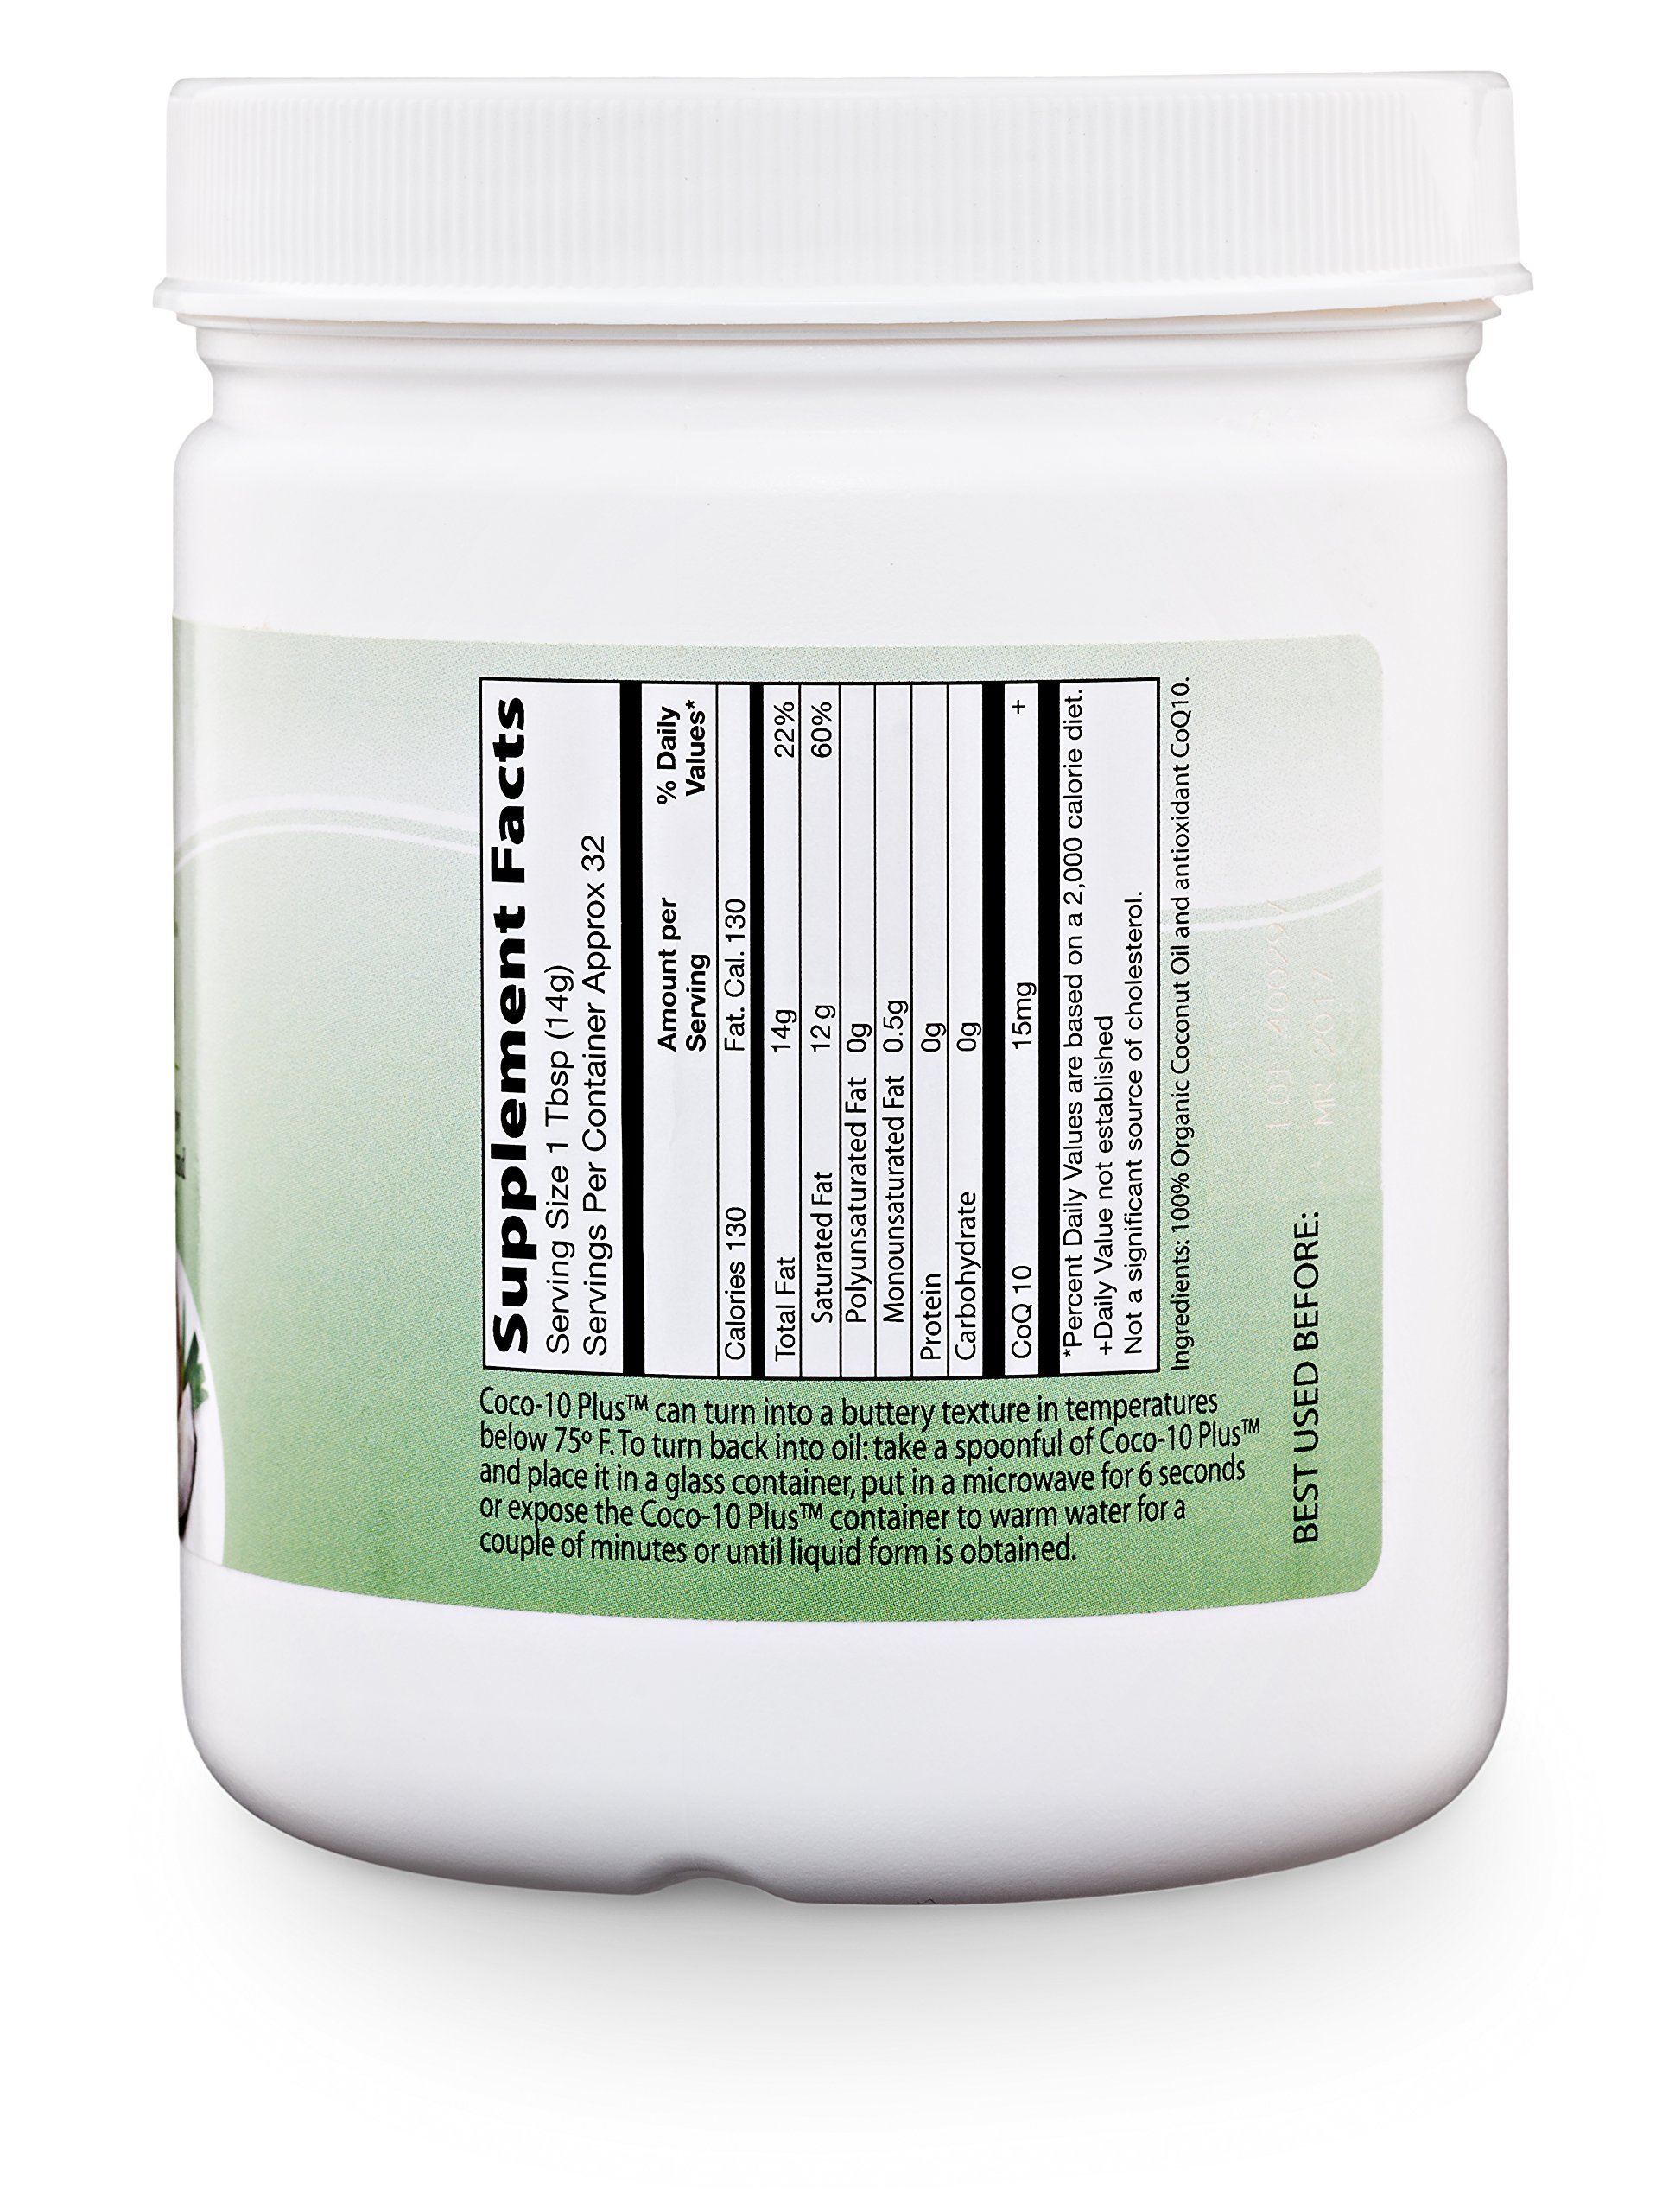 NaturalSlim''Super'' Organic Coconut Oil with CoQ10, Formulated by Obesity and Metabolism Specialist to Improve Energy Levels and Assist with Weight Loss - Natural Fat Burner to Any Diet Attempt 16 Oz by RelaxSlim  (Image #8)